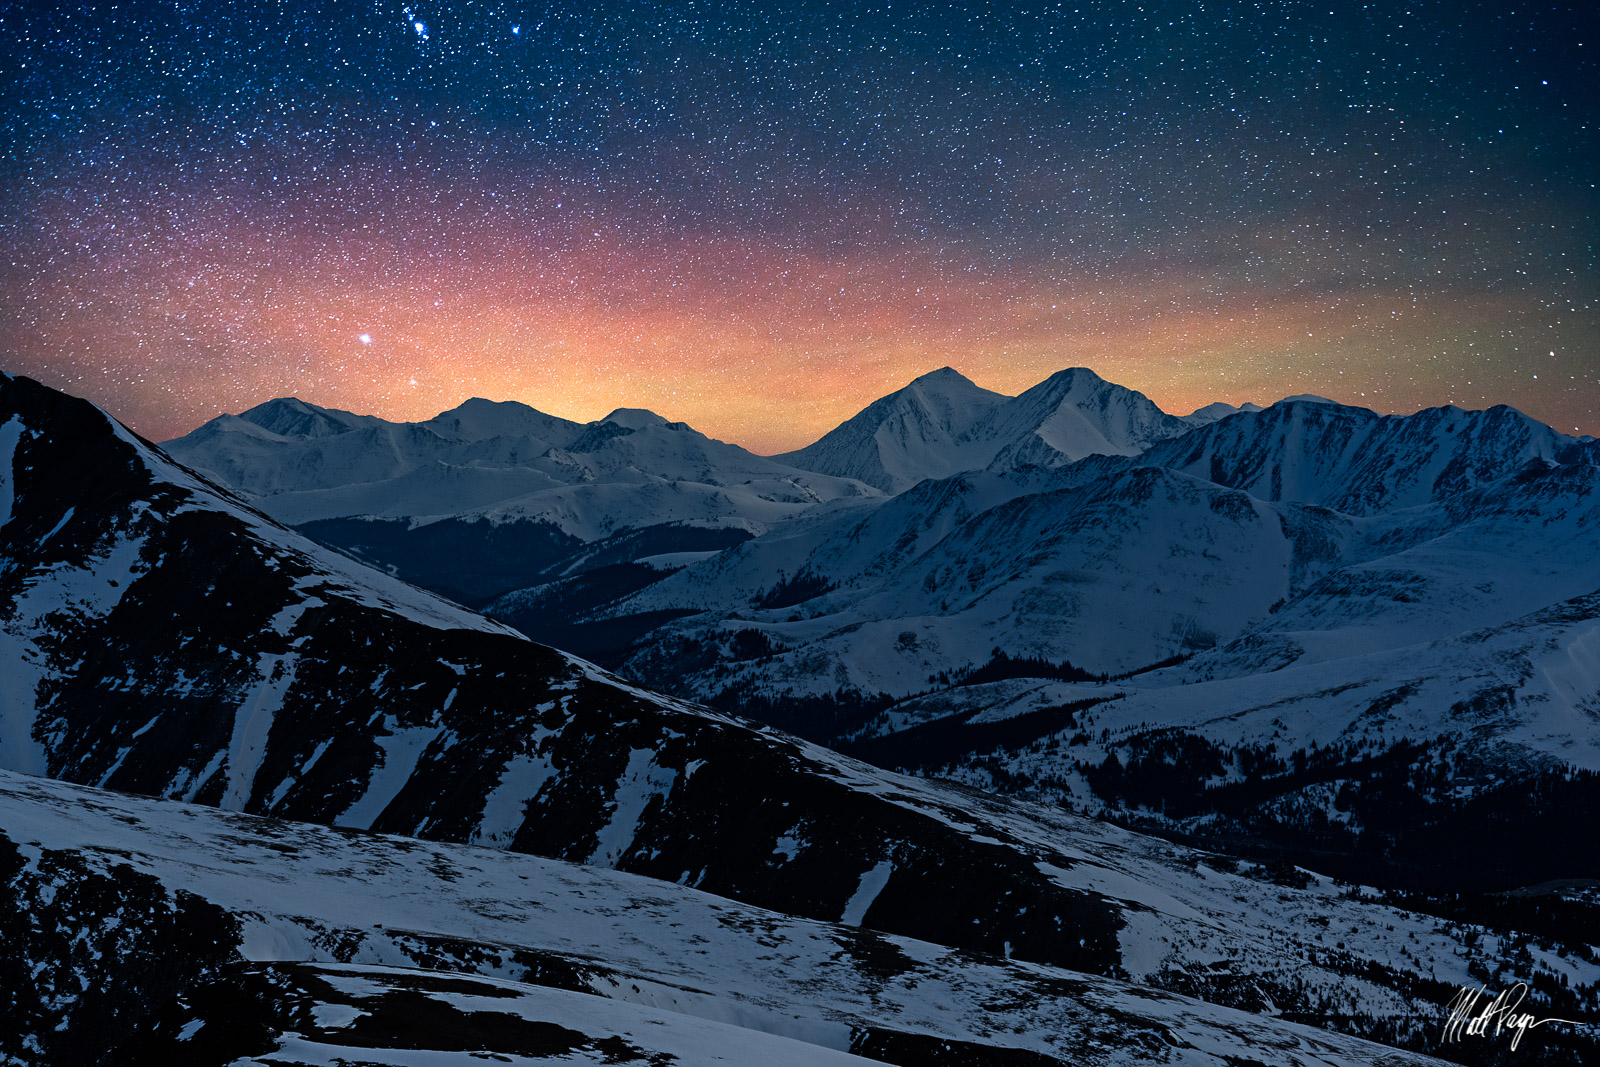 14er, 14ers, Climb, Colorado, Grays Peak, Mountains, Night, Nightscape, Stars, Mosquito Range, Torreys Peak, Denver, photo